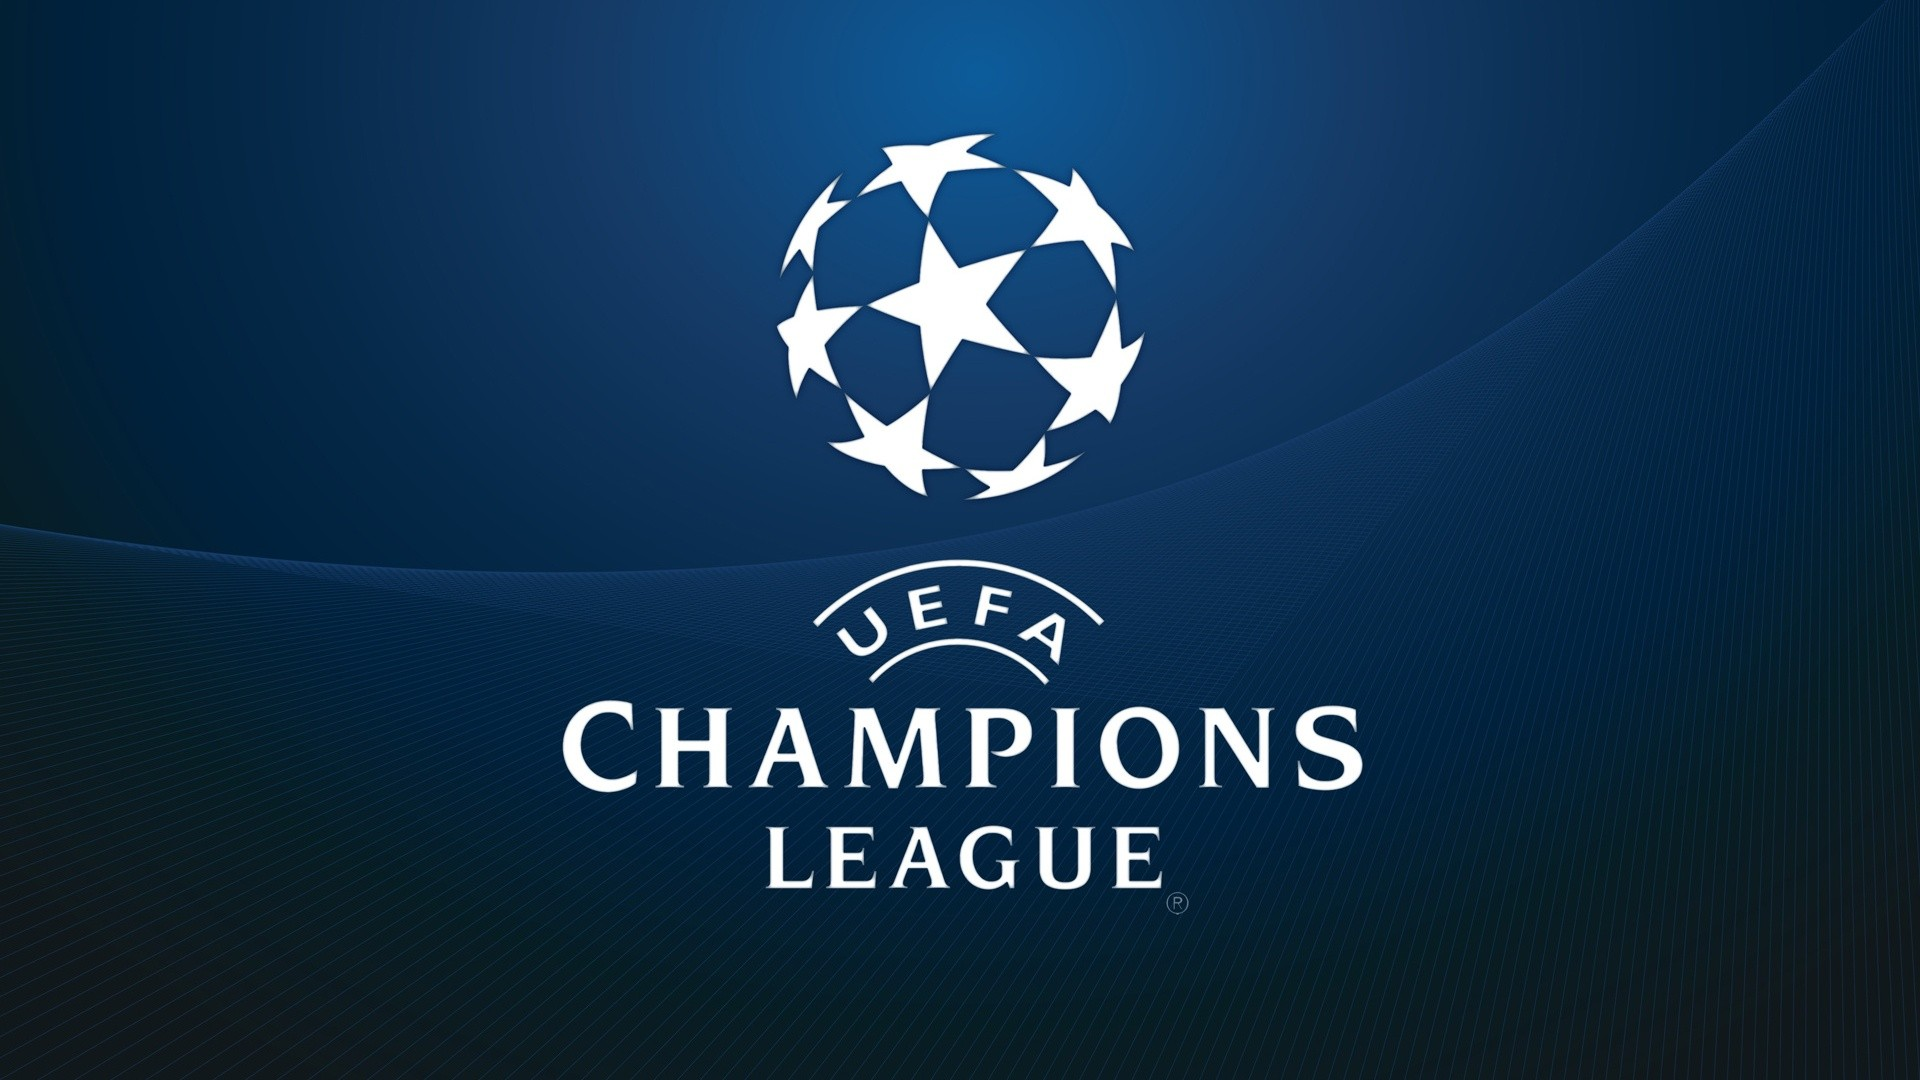 2014 Uefa Champions League What To Know 32 Flags